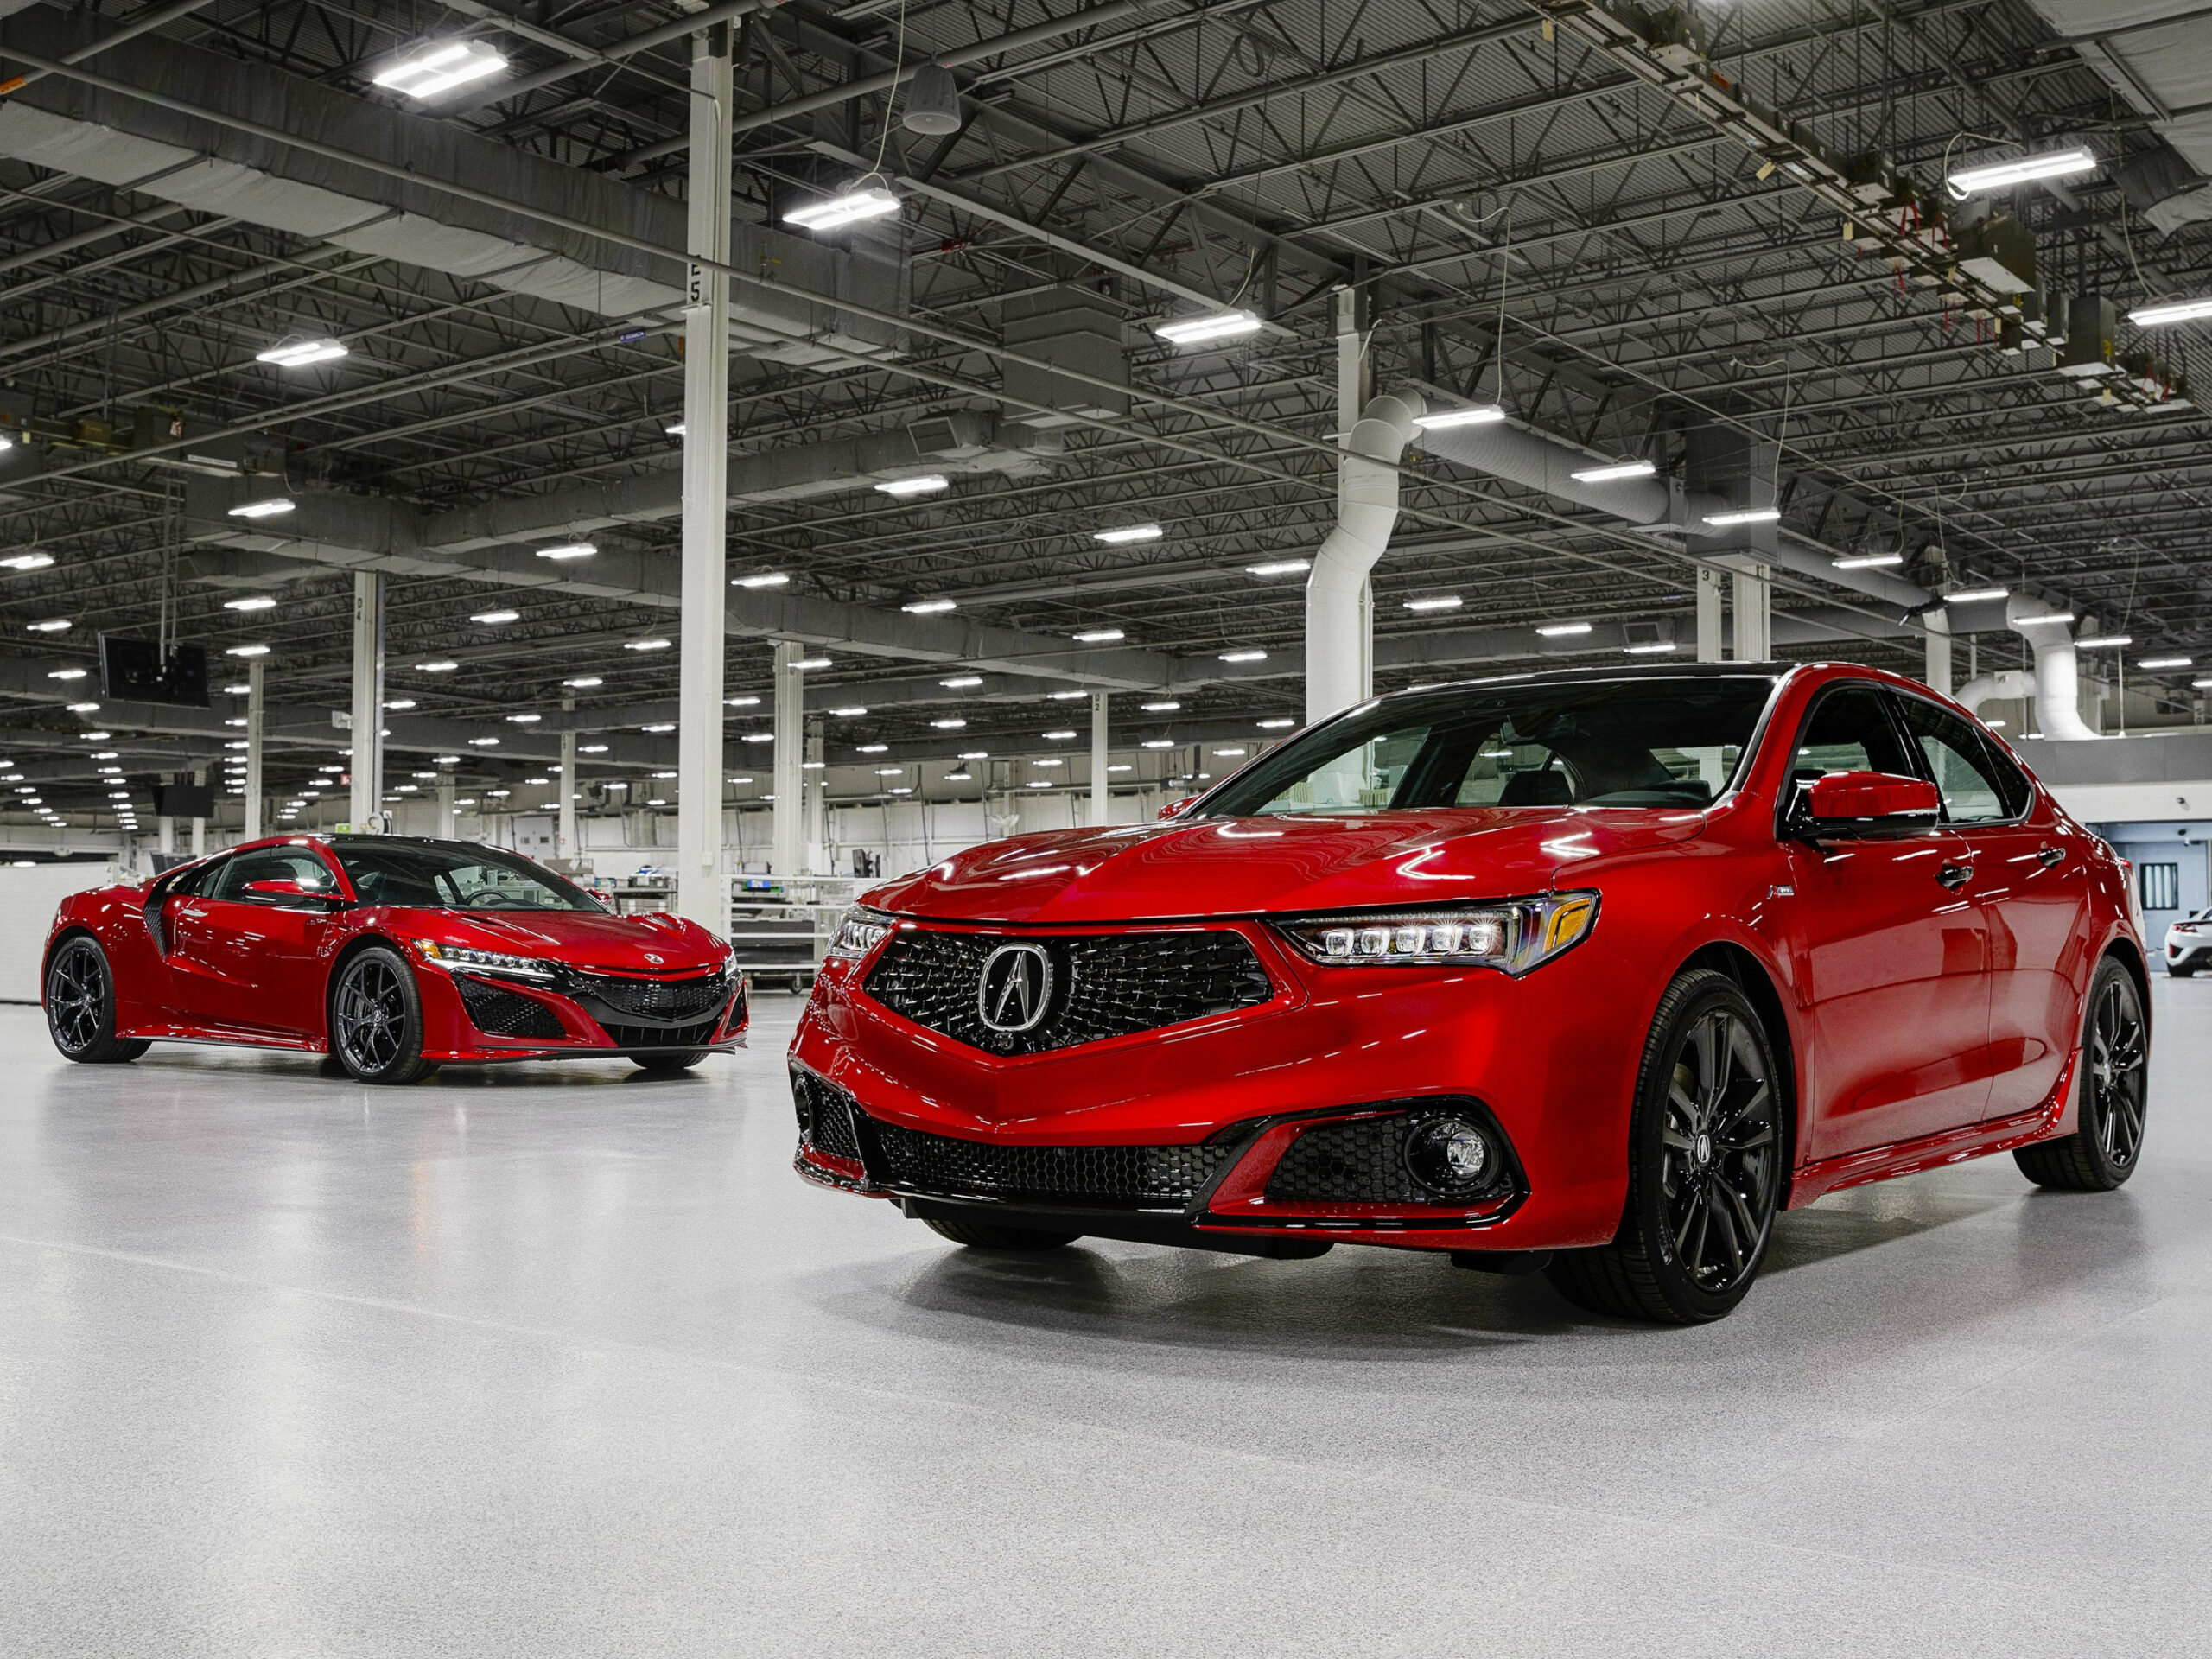 The 12 Acura TLX PMC Edition Is Hand Made In the NSX Factory